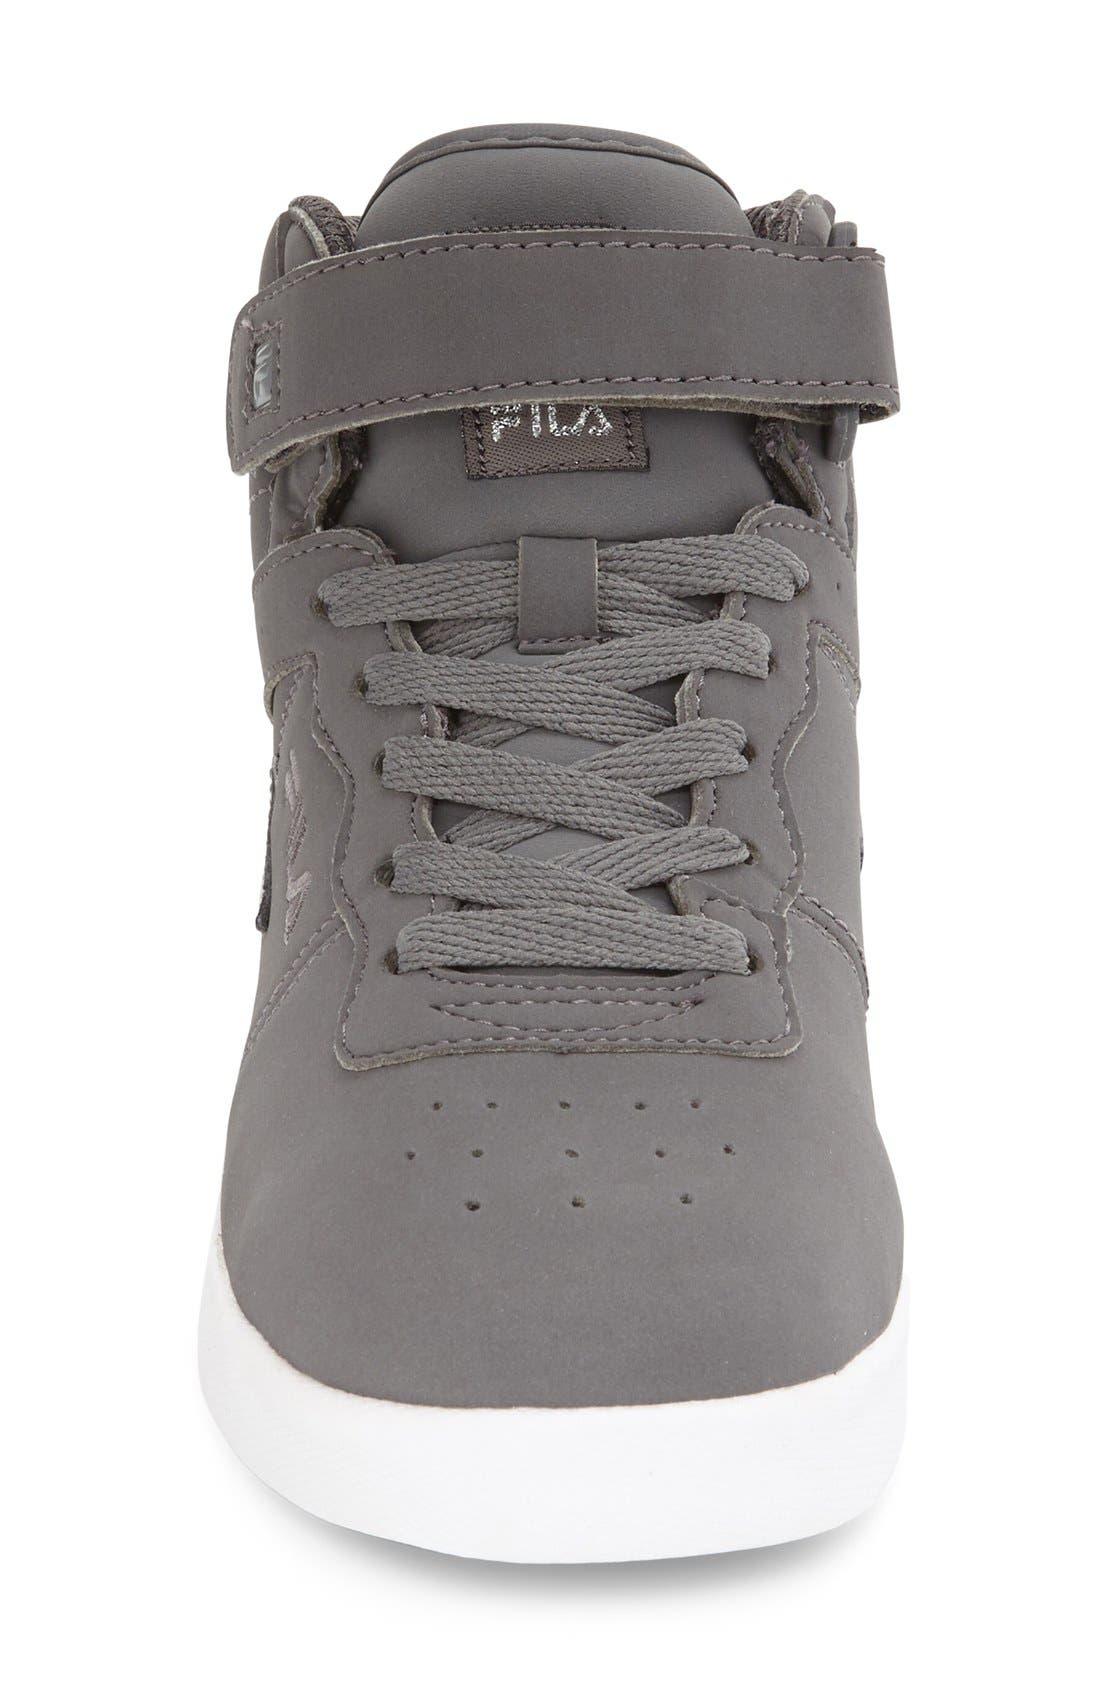 Vulc 13 High Top Sneaker,                             Alternate thumbnail 3, color,                             Pewter/ White